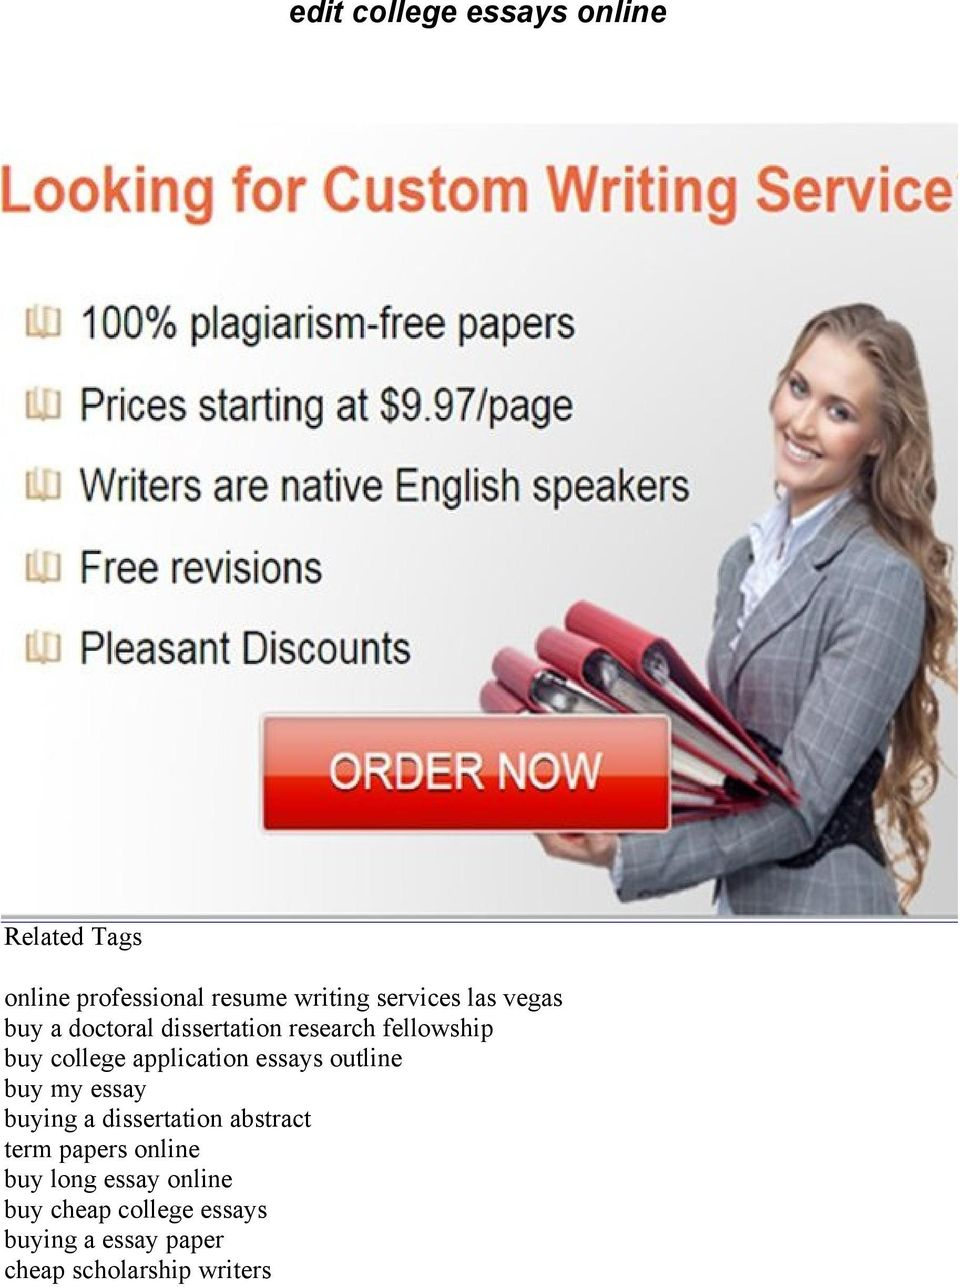 Picture Book Analysis Essay  Persuasive Speech Example Essay also The Great Depression Essay Edit College Essays Online  Pdf Essay Writing Help Online